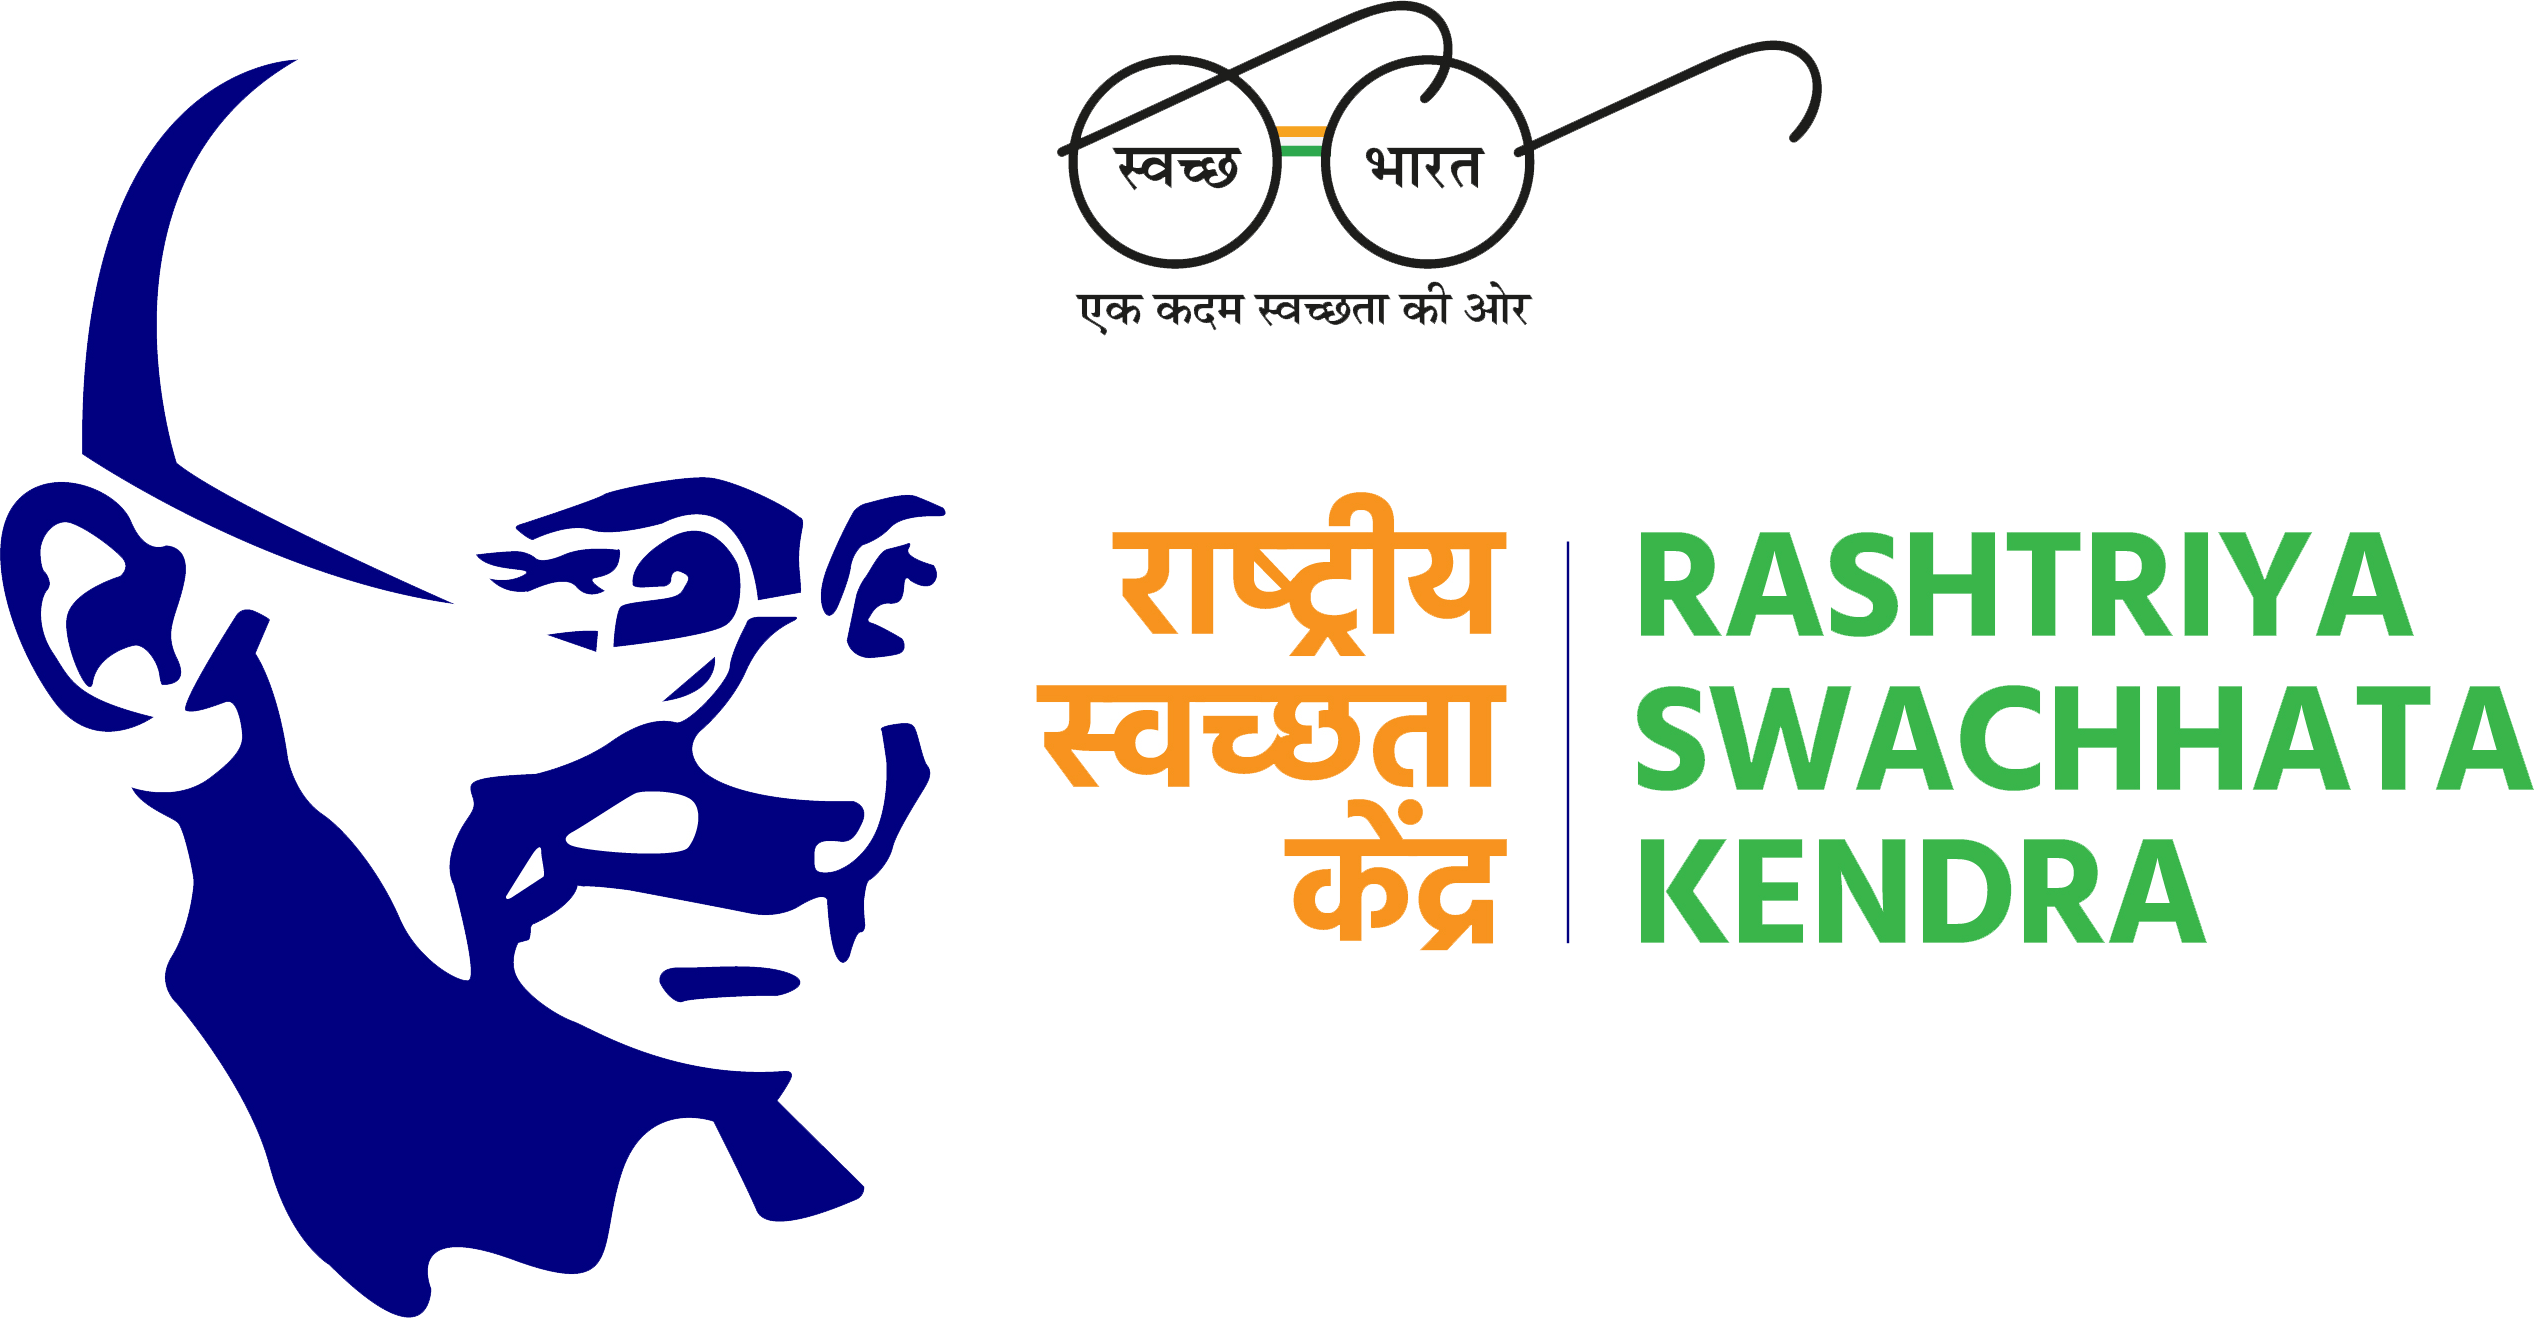 Rashtriya Swachhata Kendra, Department of Drinking water & Sanitation, Ministry of Jal Shakti